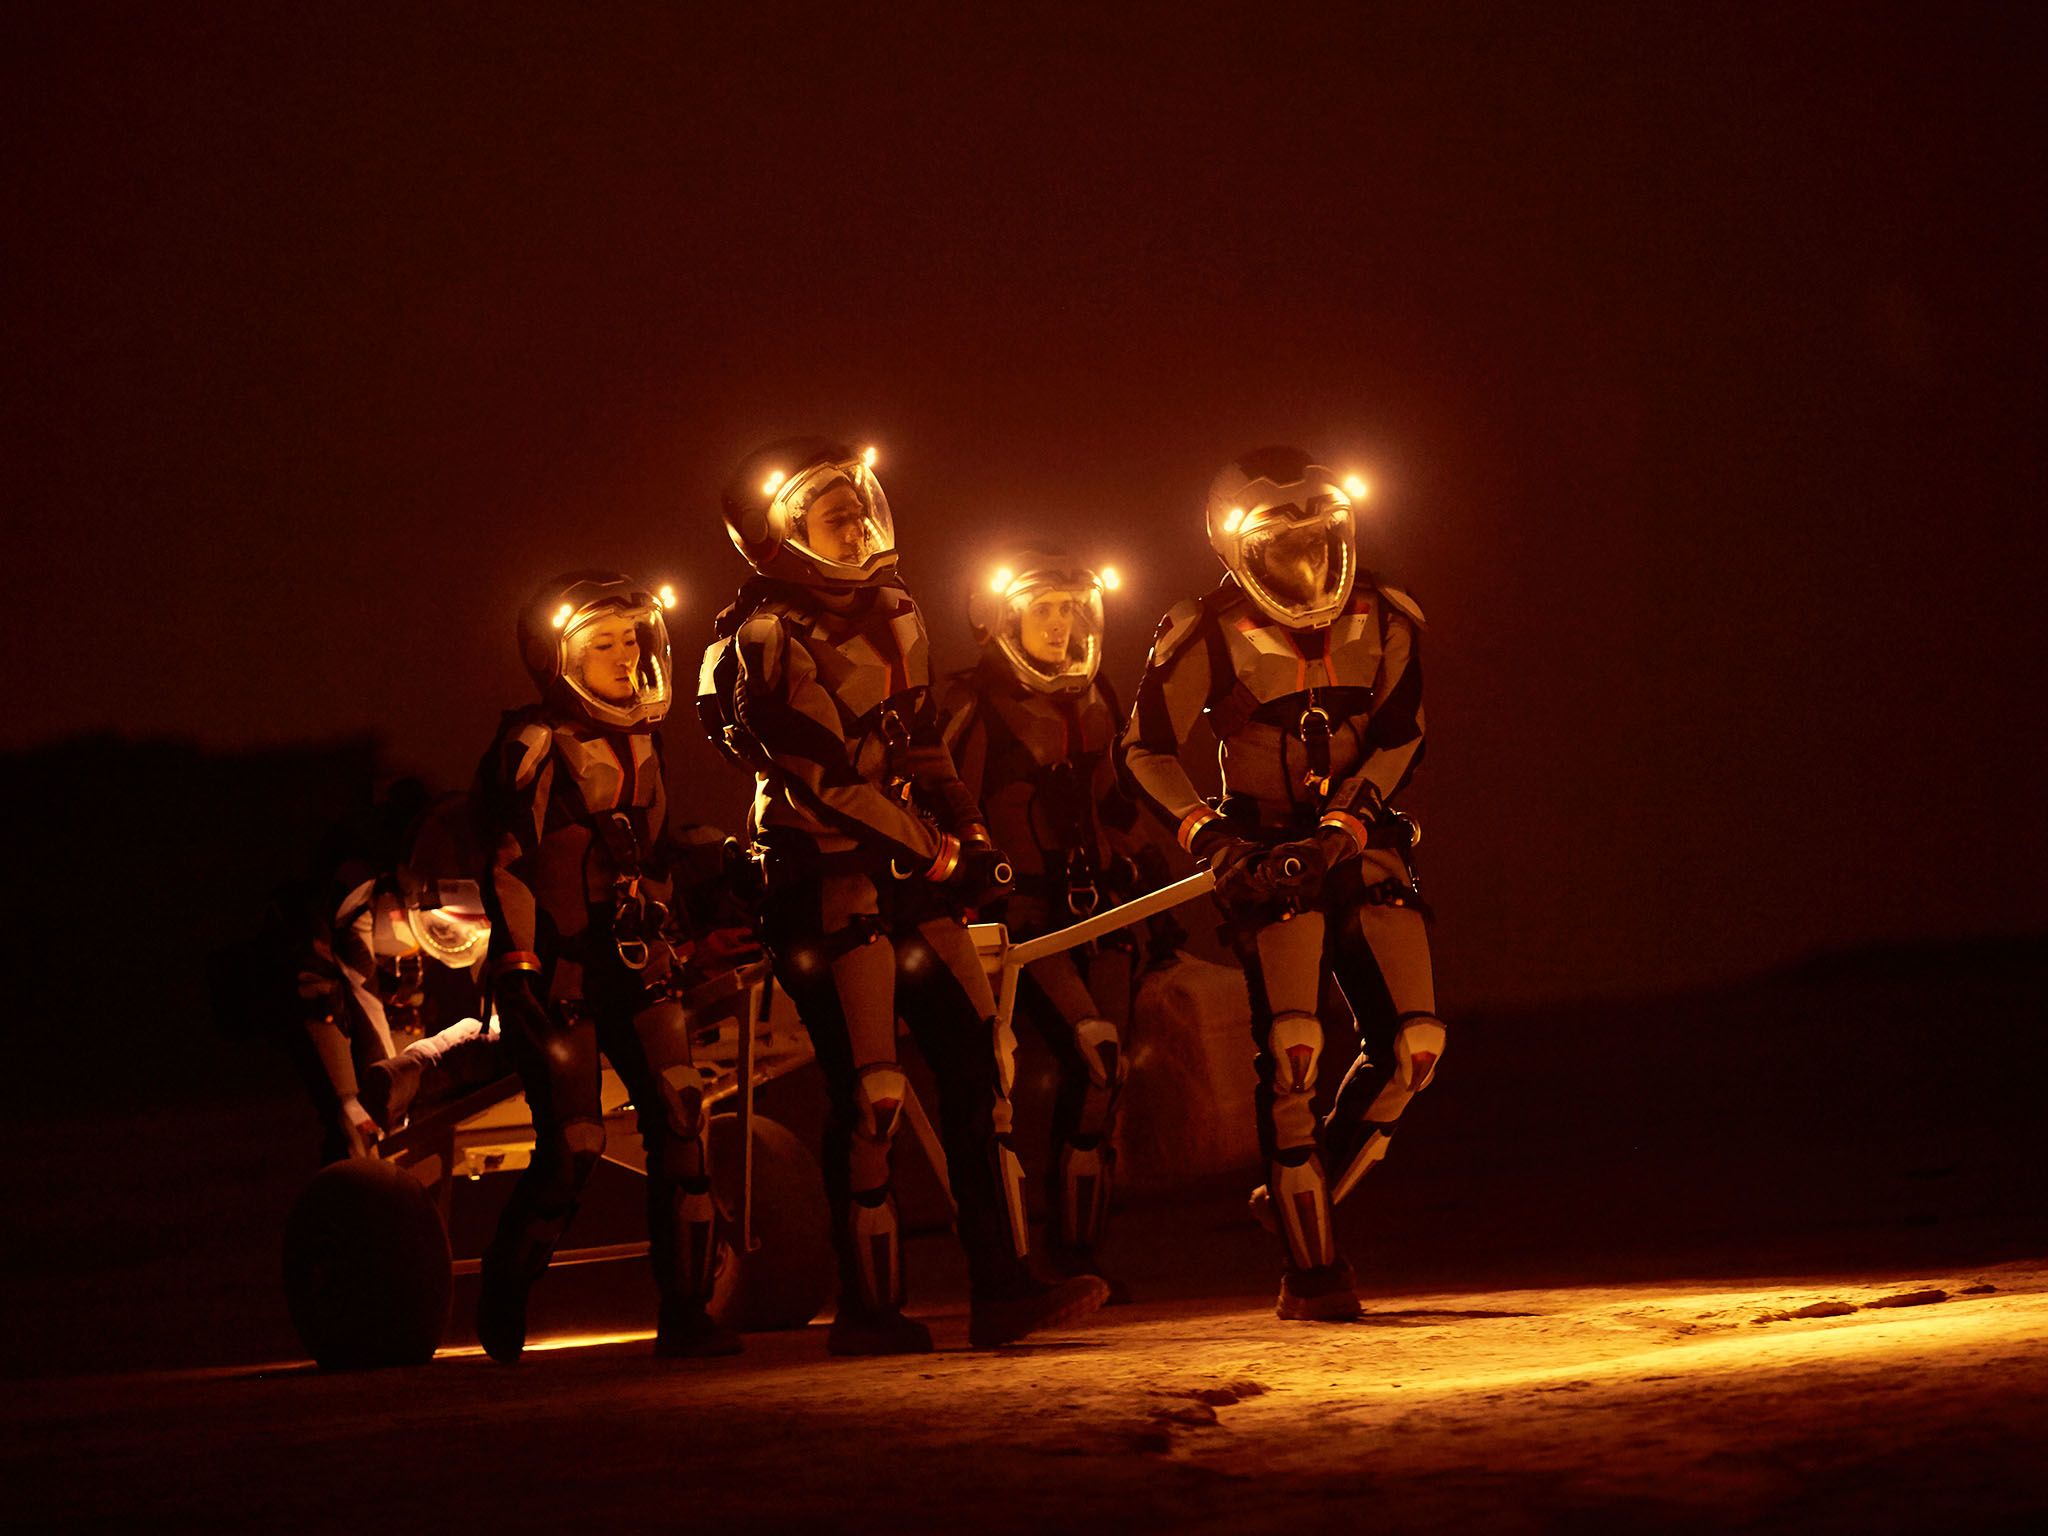 Reenactment: The crew on Mars. This image is from Mars. [Photo of the day - دسامبر 2016]